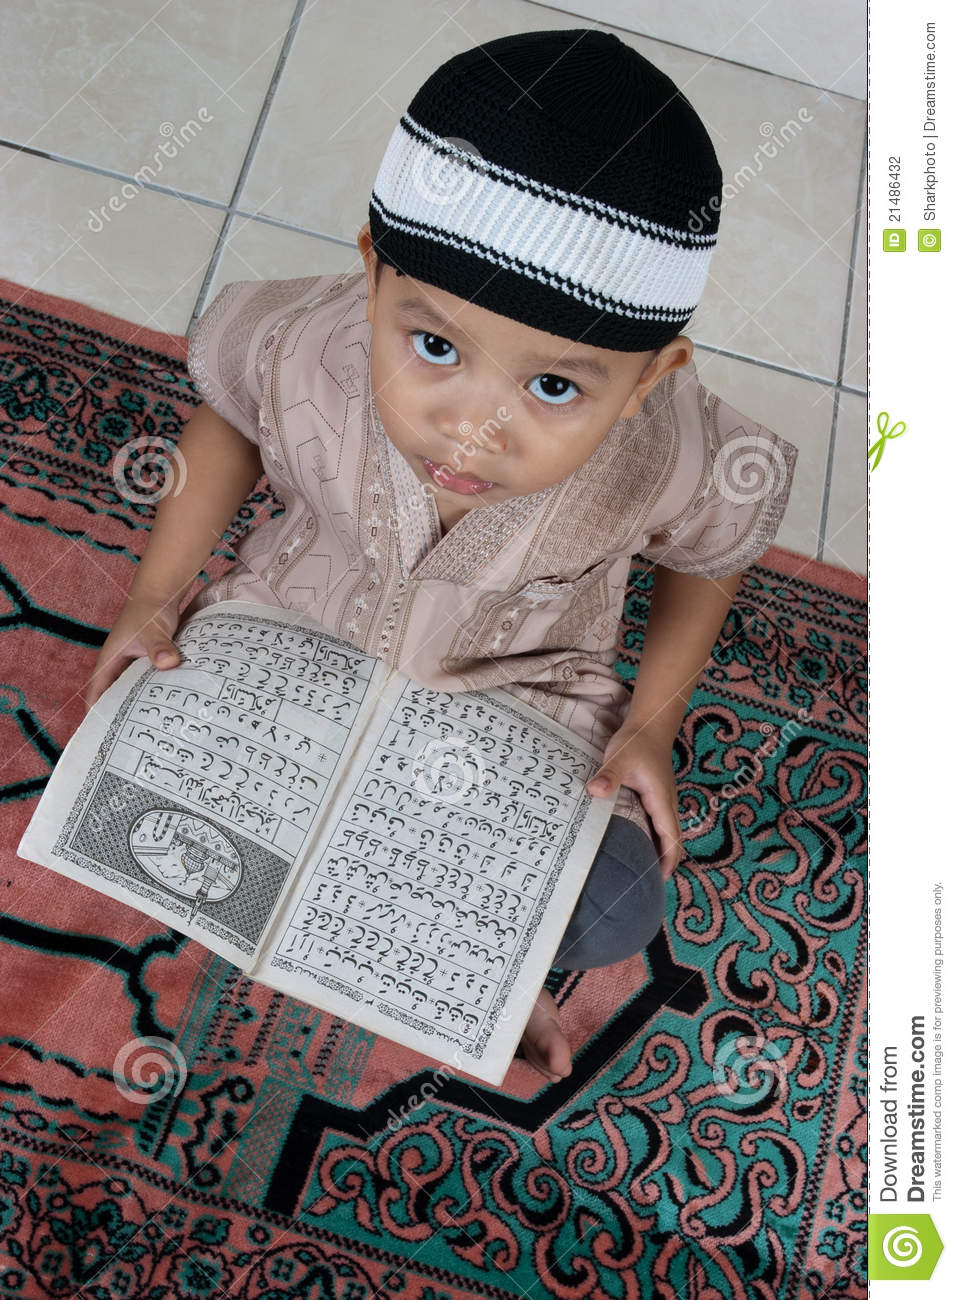 Free Learn Quran - Free downloads and reviews - CNET ...